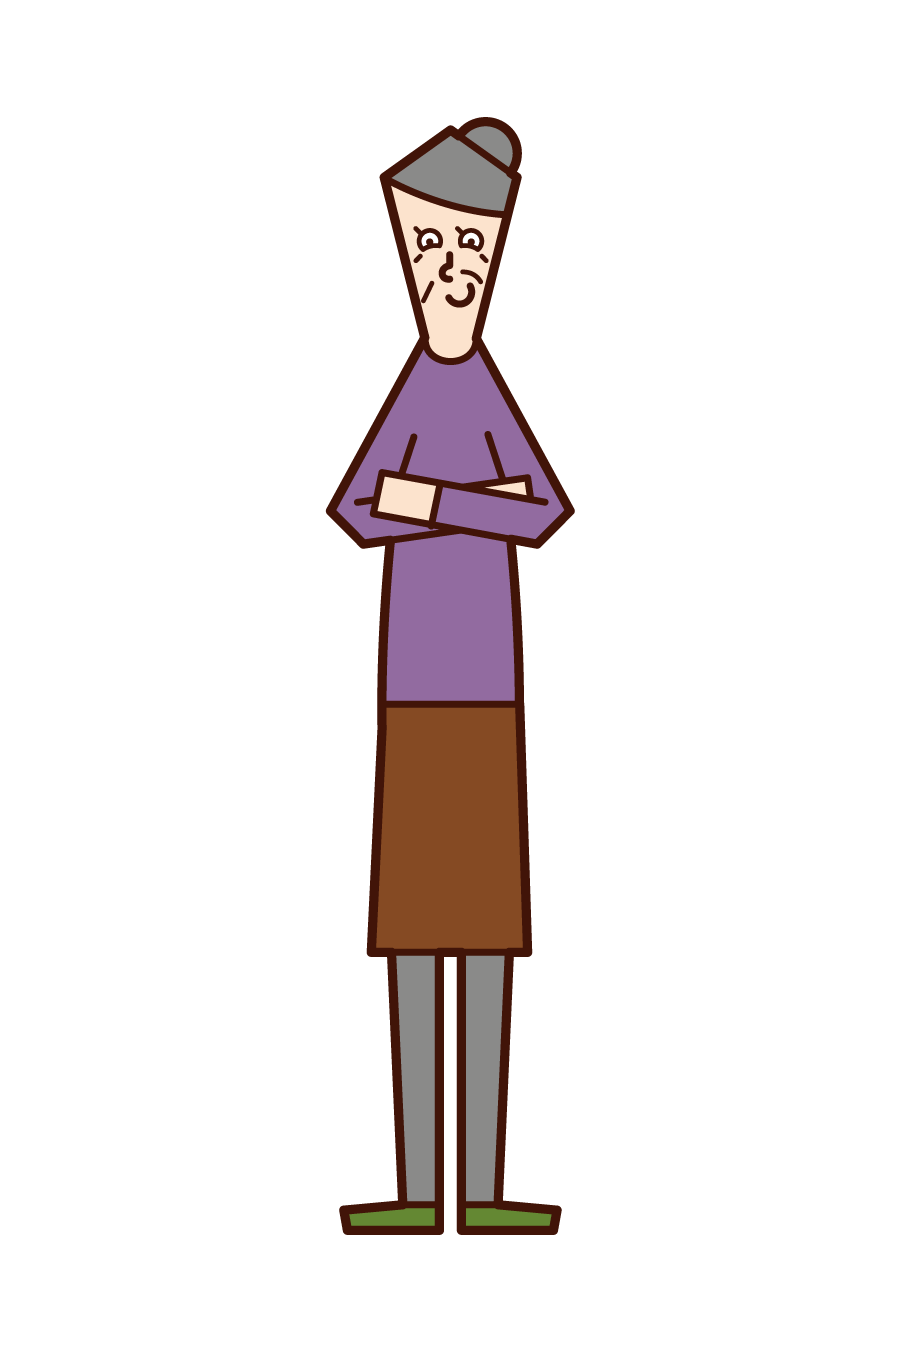 Illustration of an old man (woman) looking down